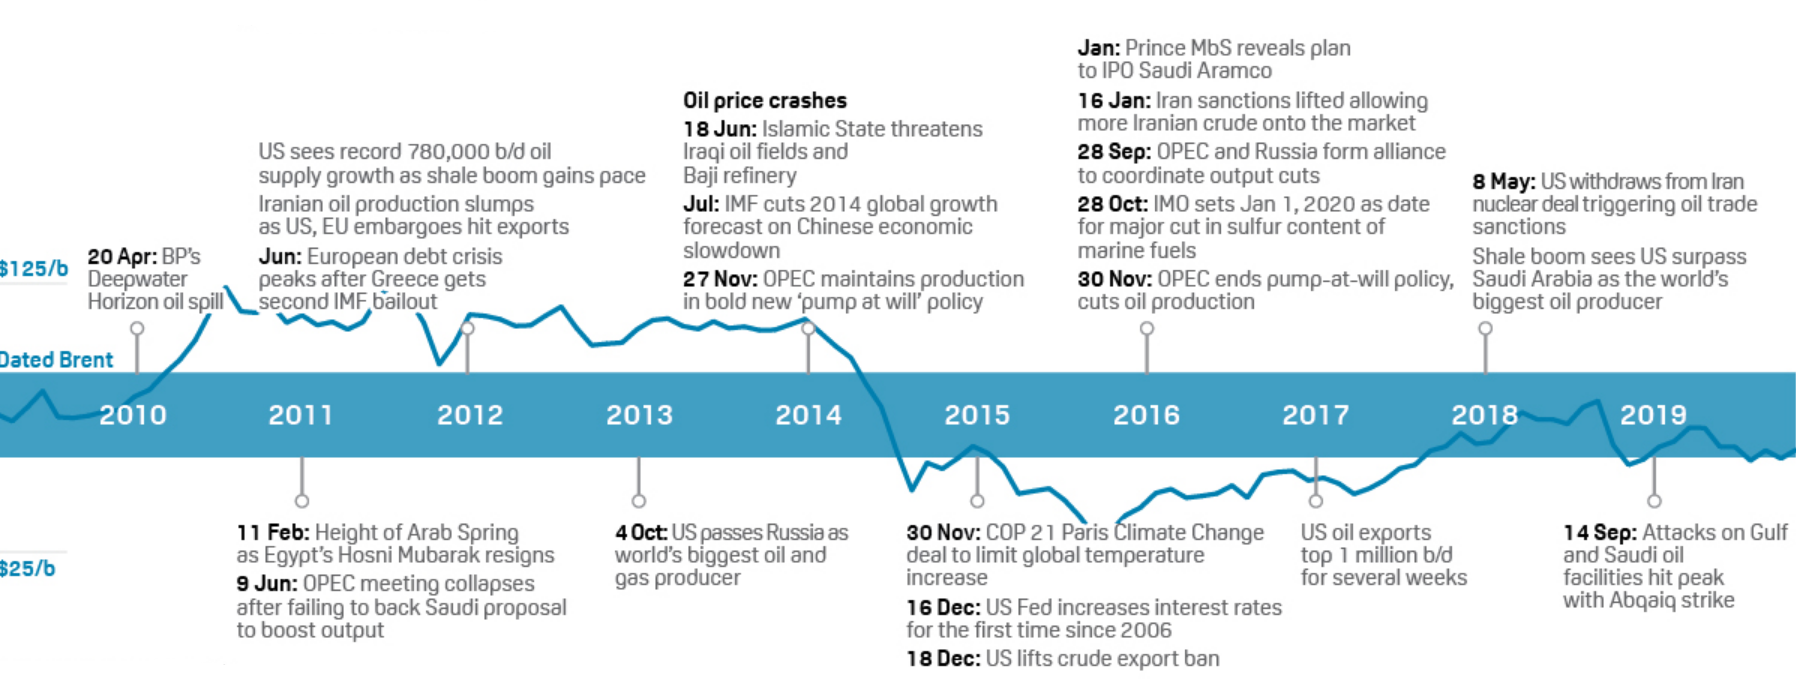 Oil Prices and Major events 2010 to 2019